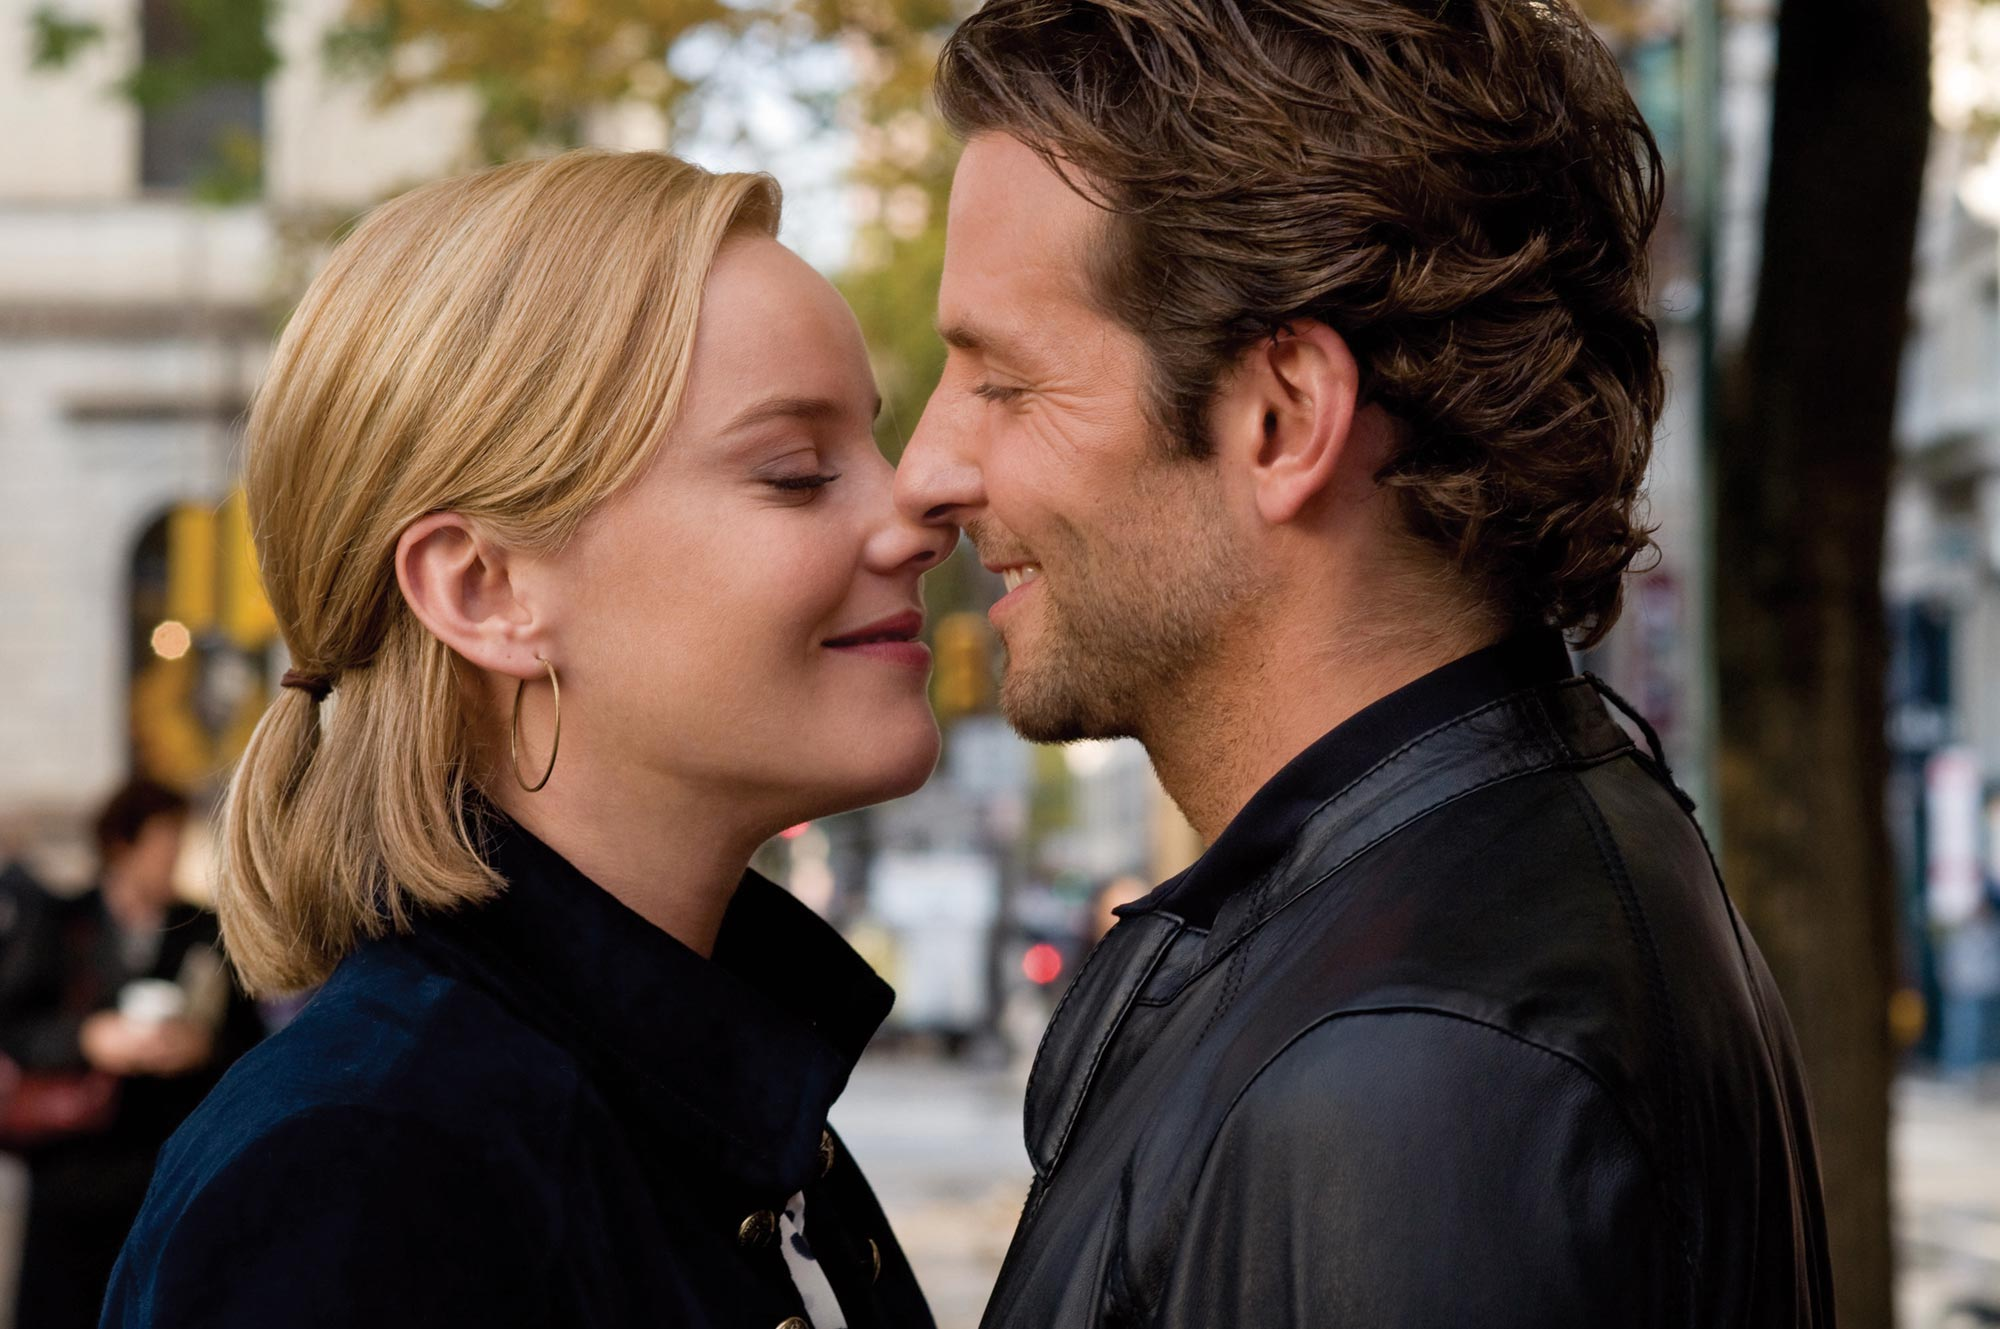 Bradley Cooper and Abbie Cornish in Limitless